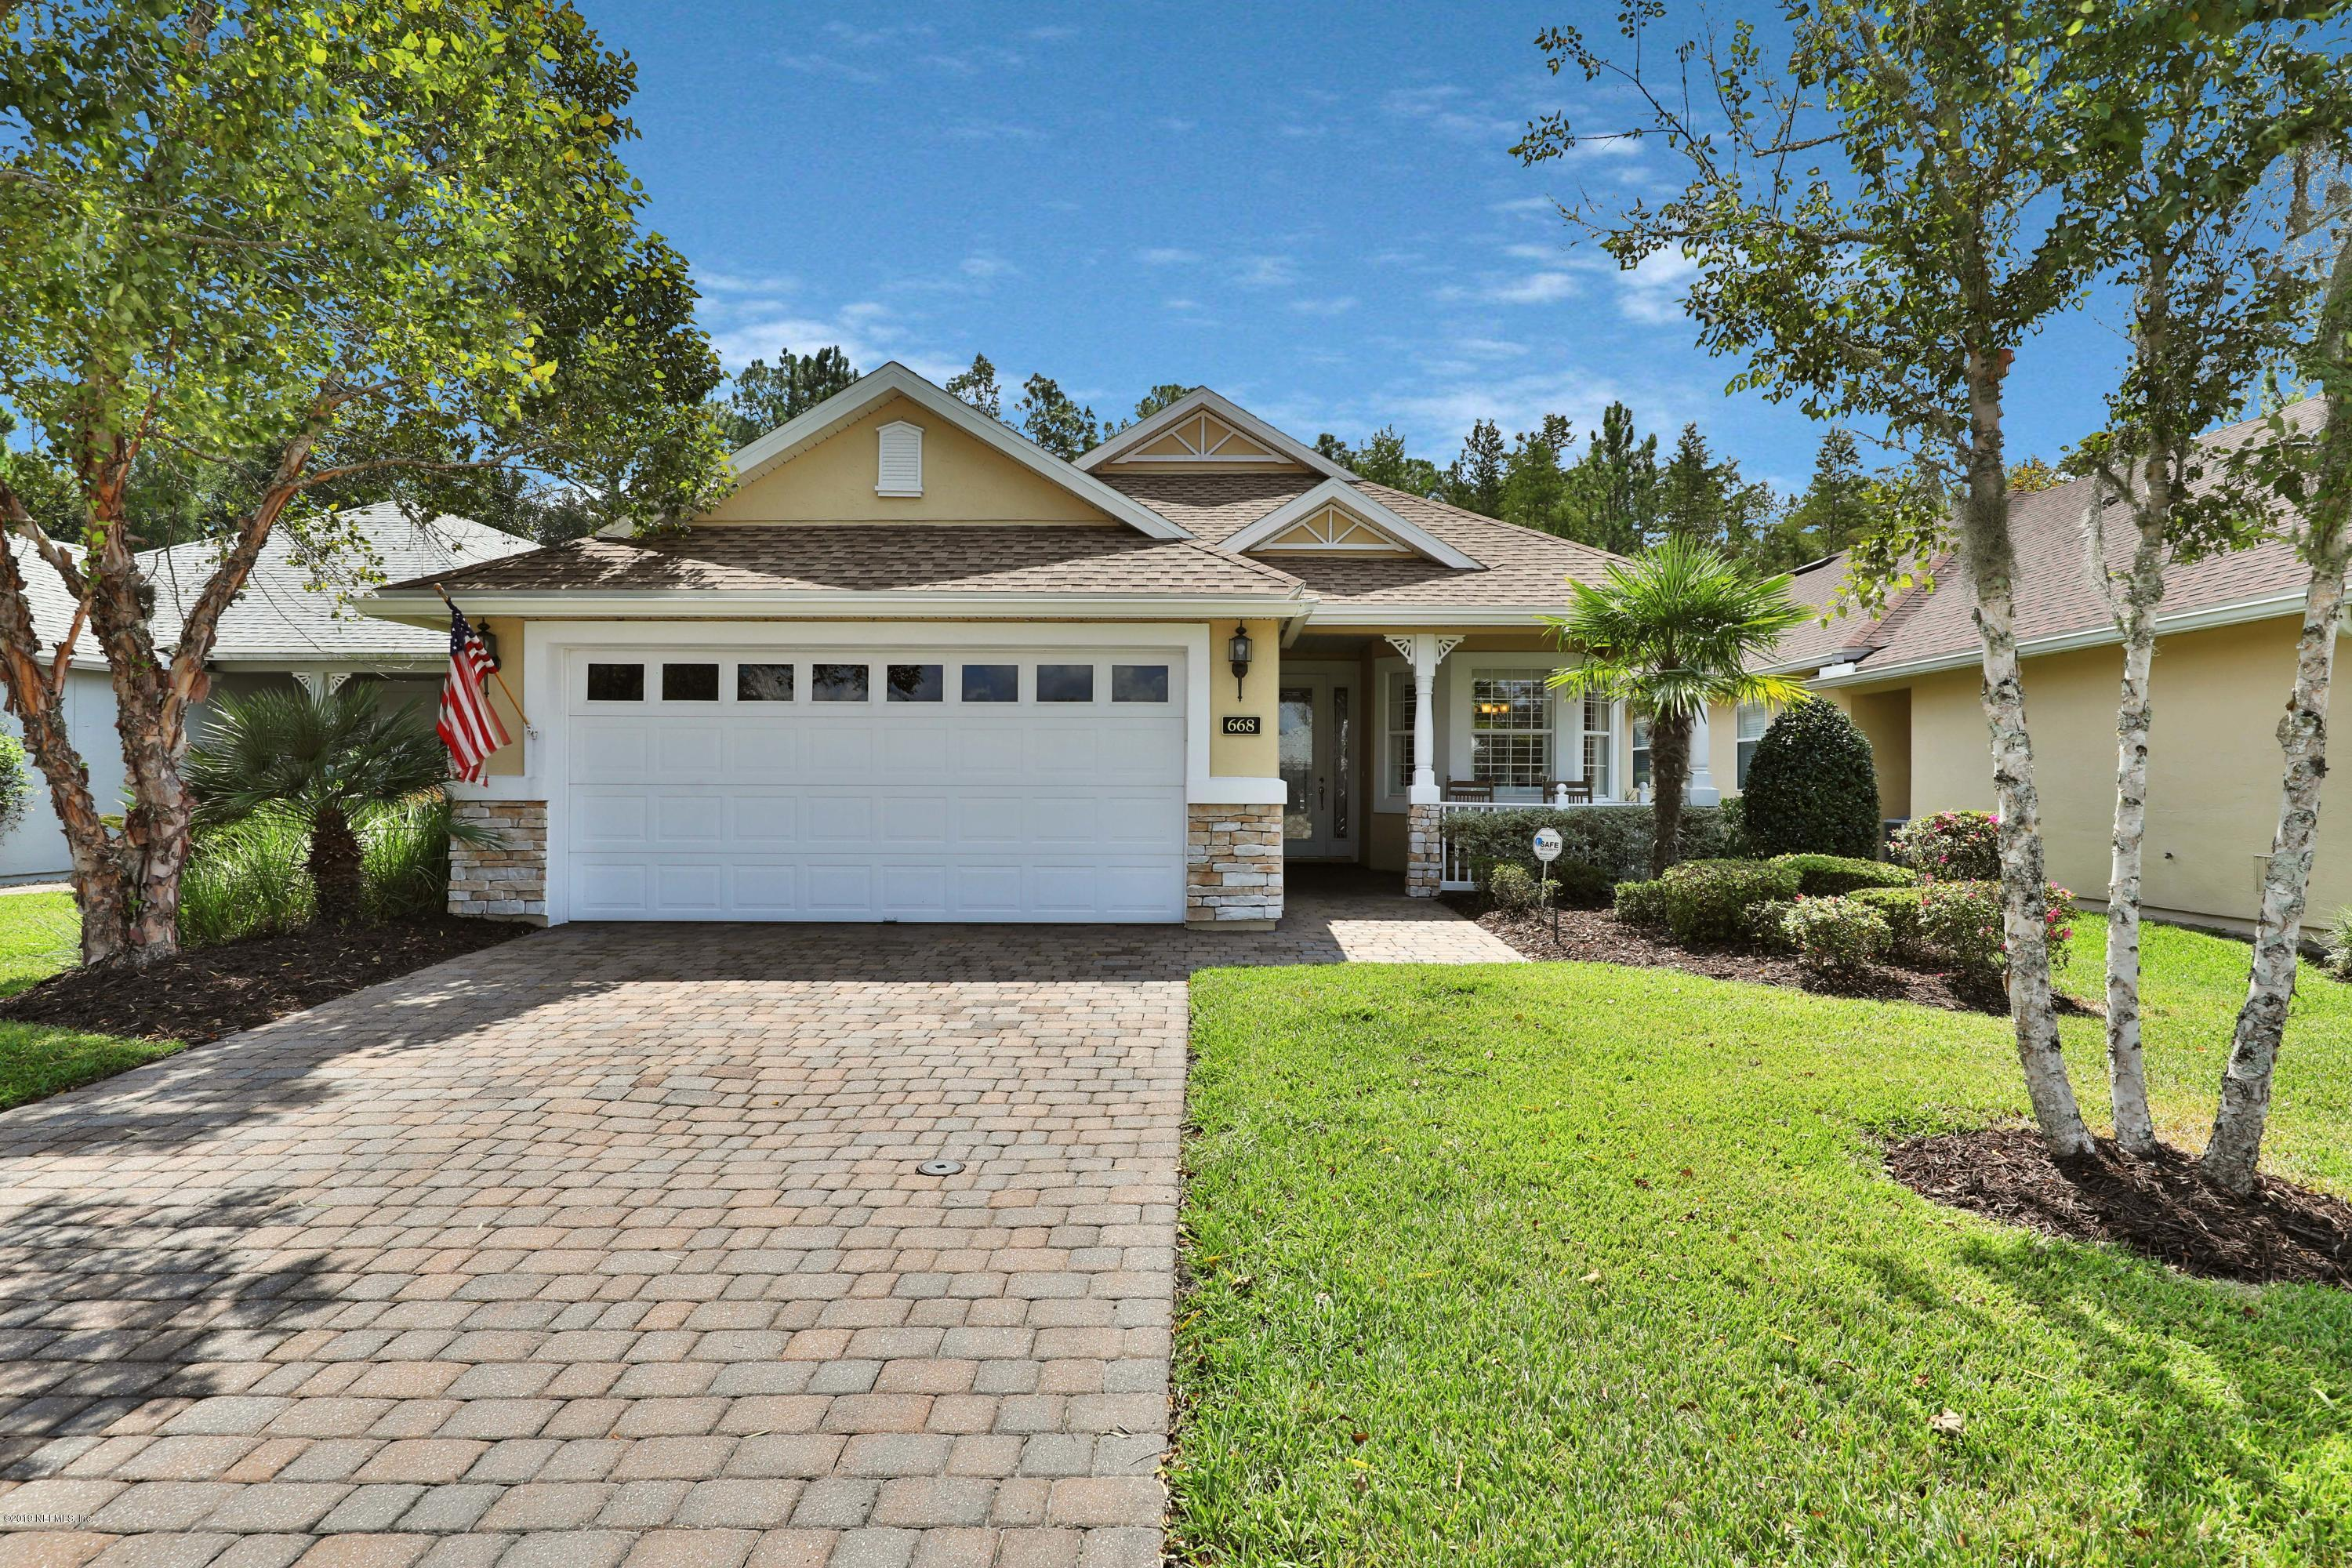 668 COPPERHEAD, ST AUGUSTINE, FLORIDA 32092, 3 Bedrooms Bedrooms, ,2 BathroomsBathrooms,Residential - single family,For sale,COPPERHEAD,1015215